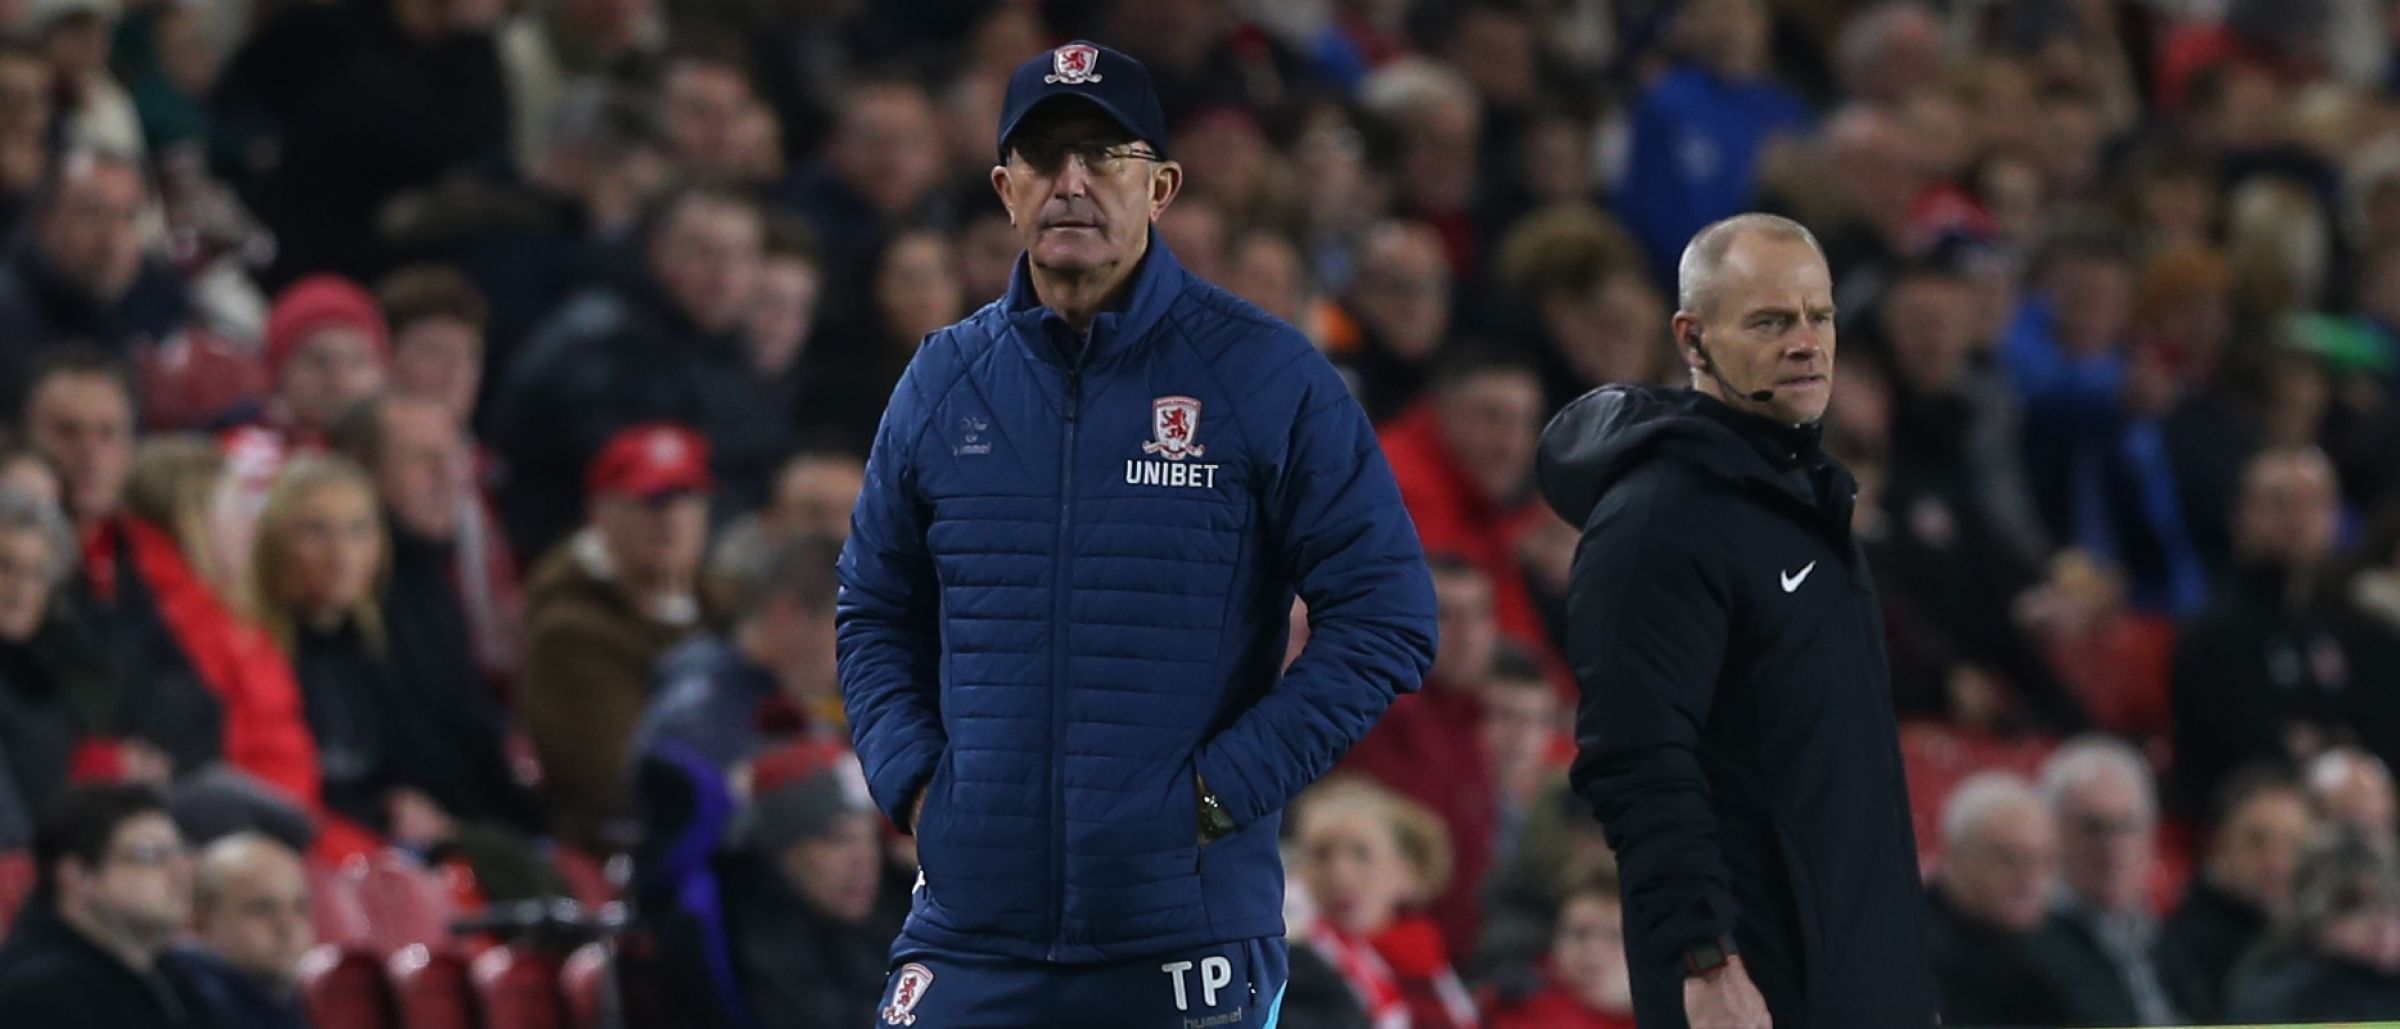 Rarely seen outside the touchline, Tony Pulis is on his feet once again